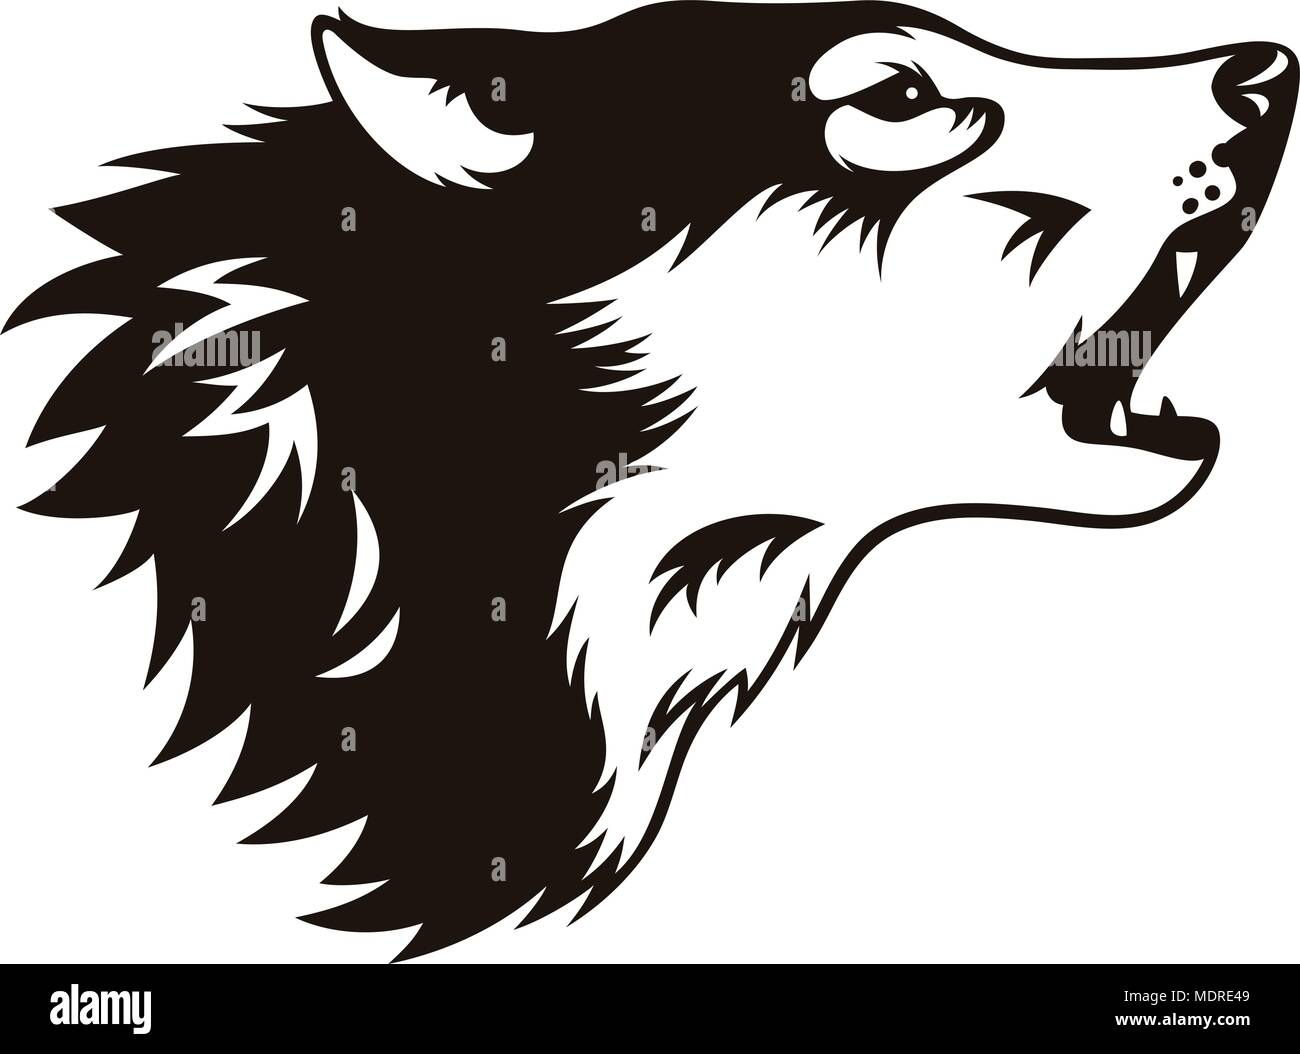 Stylised head of wolf isolated on white. This vector illustration can be used as a print on T-shirts, tattoo element or other uses - Stock Vector